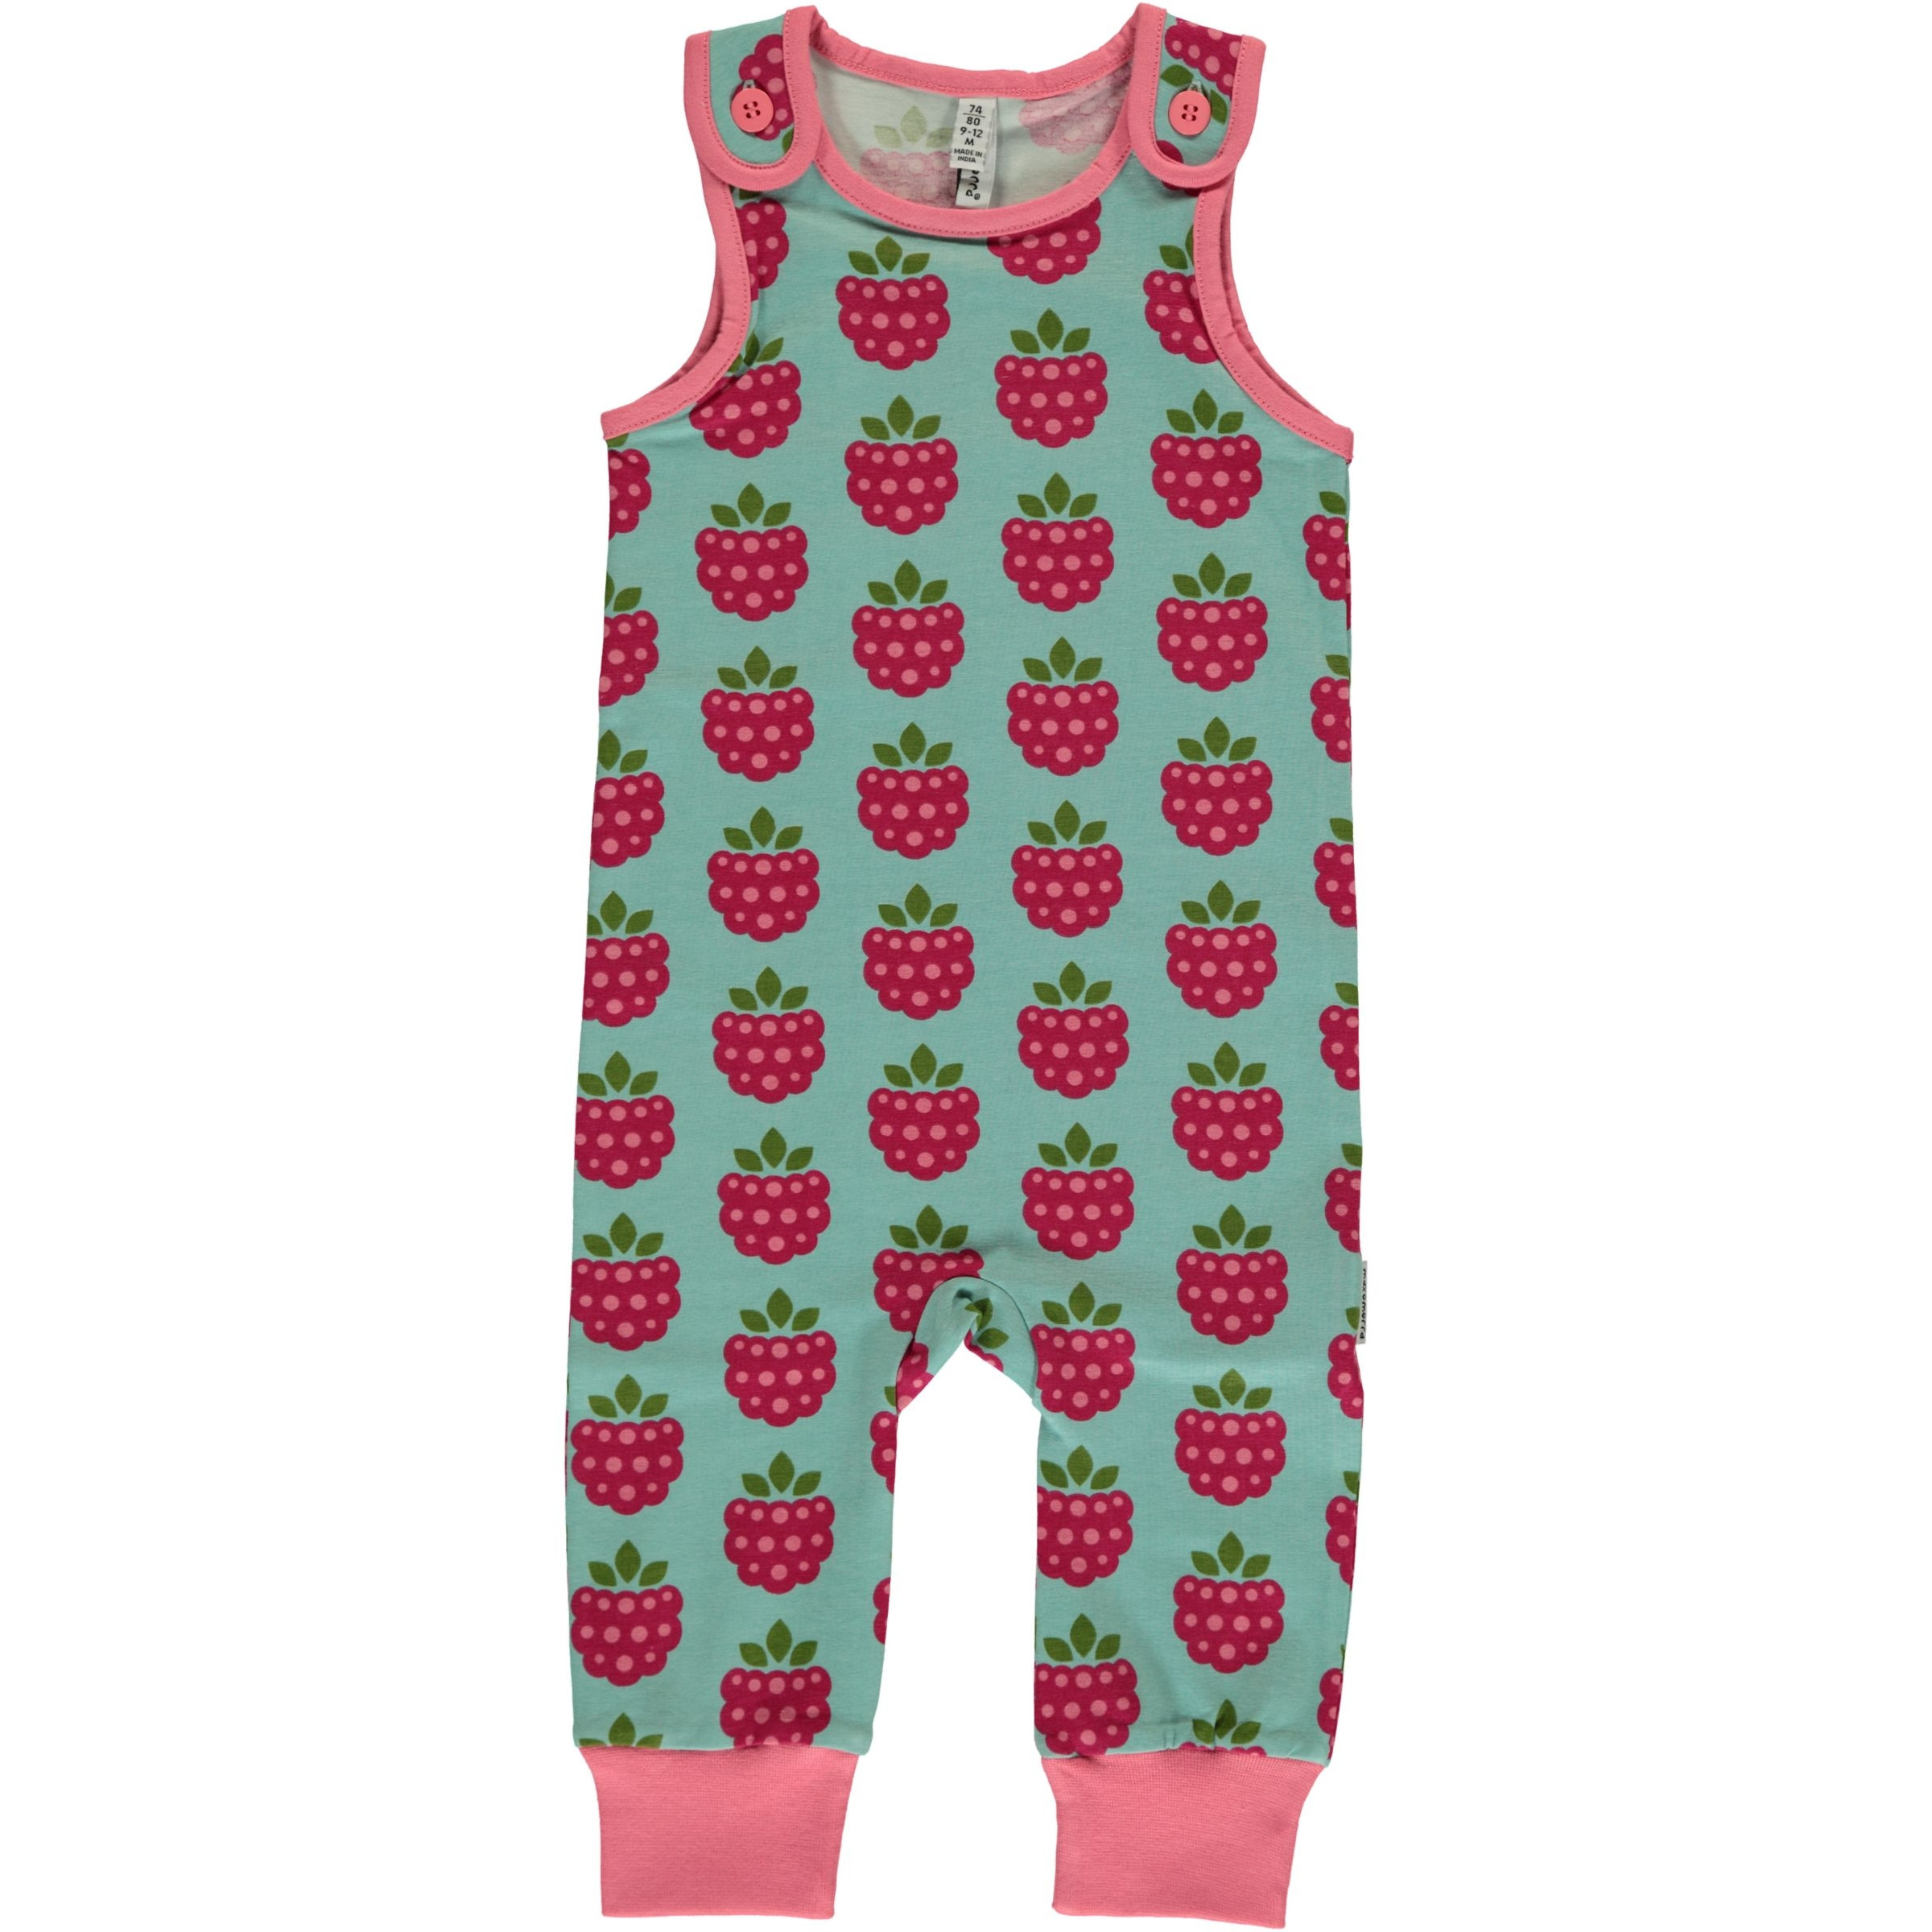 Maxomorra Raspberry Playsuit Long